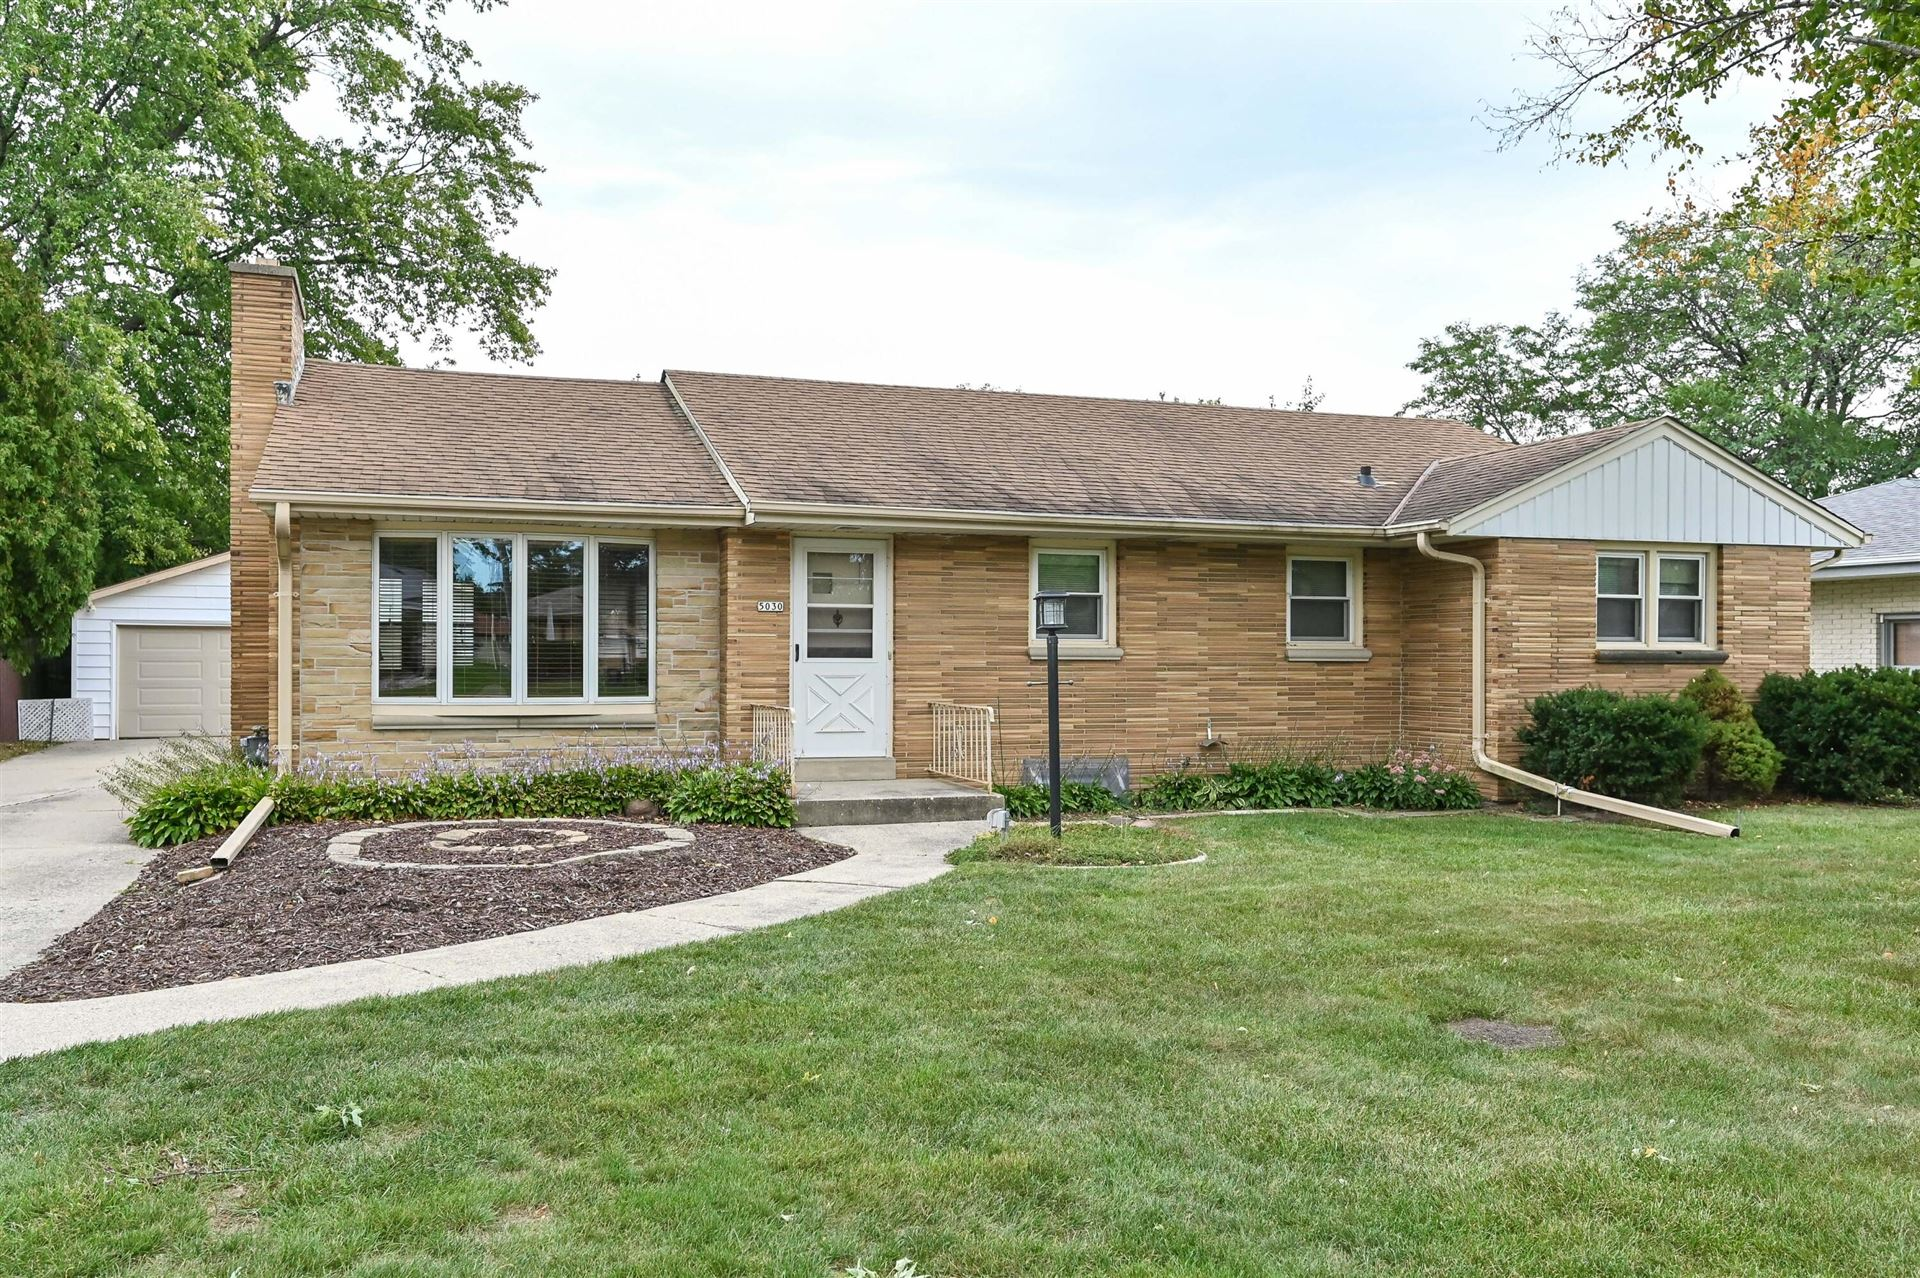 5030 S 28th St, Greenfield, WI 53221 - #: 1763966